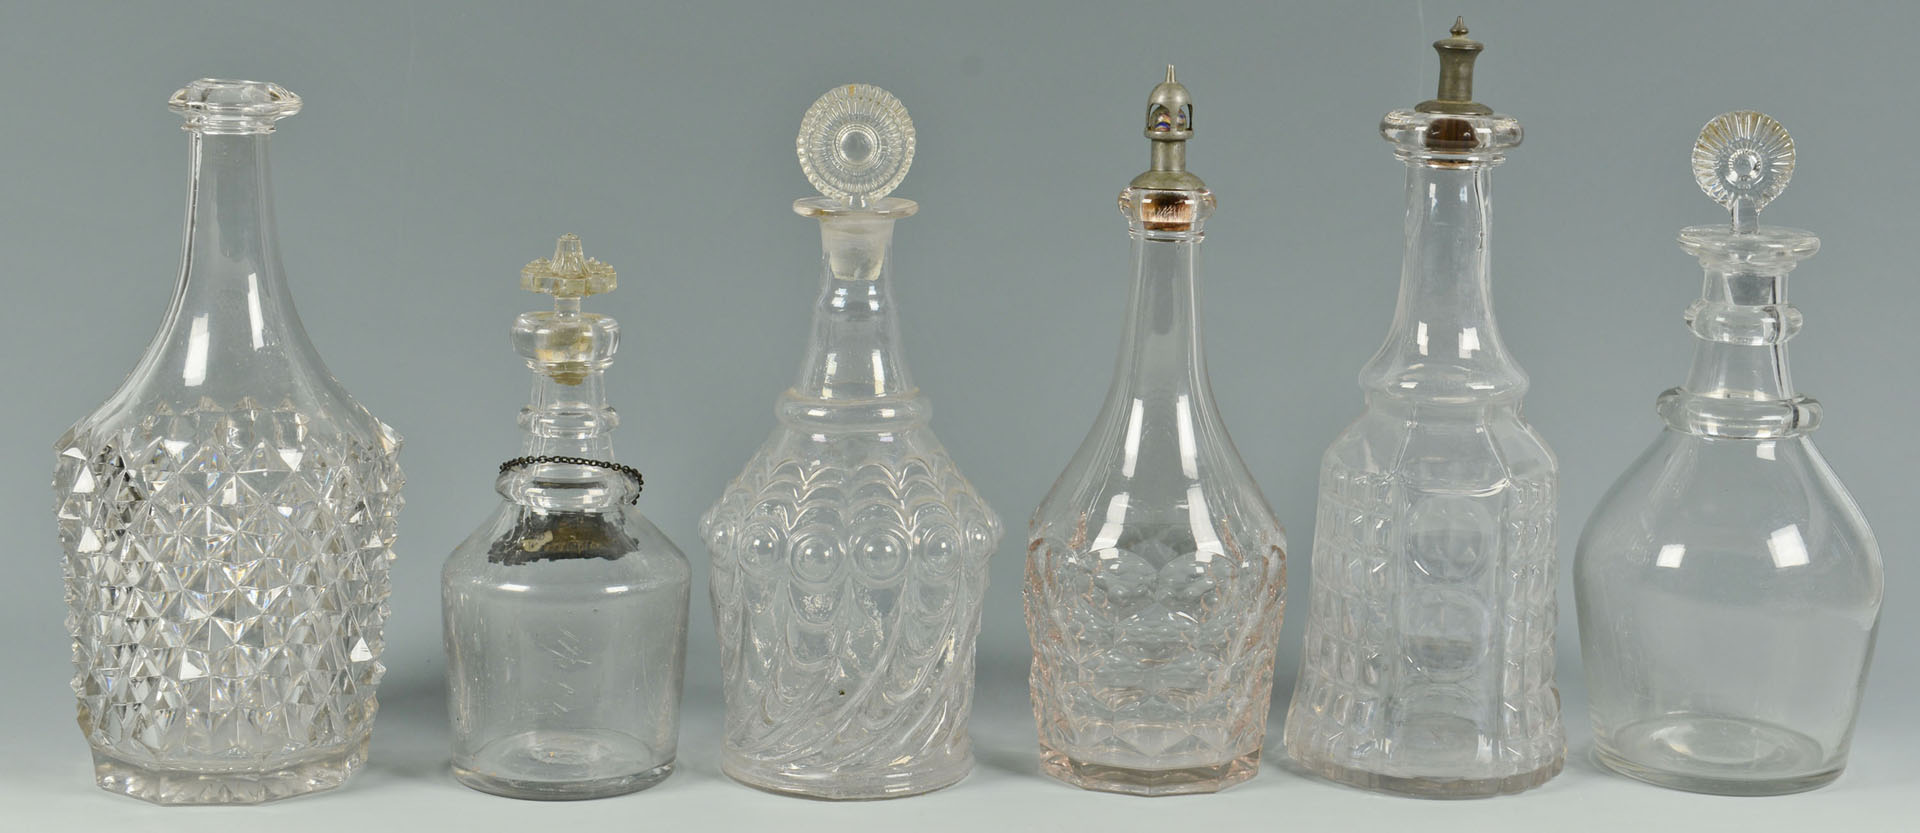 6 Glass Decanters, 19th century